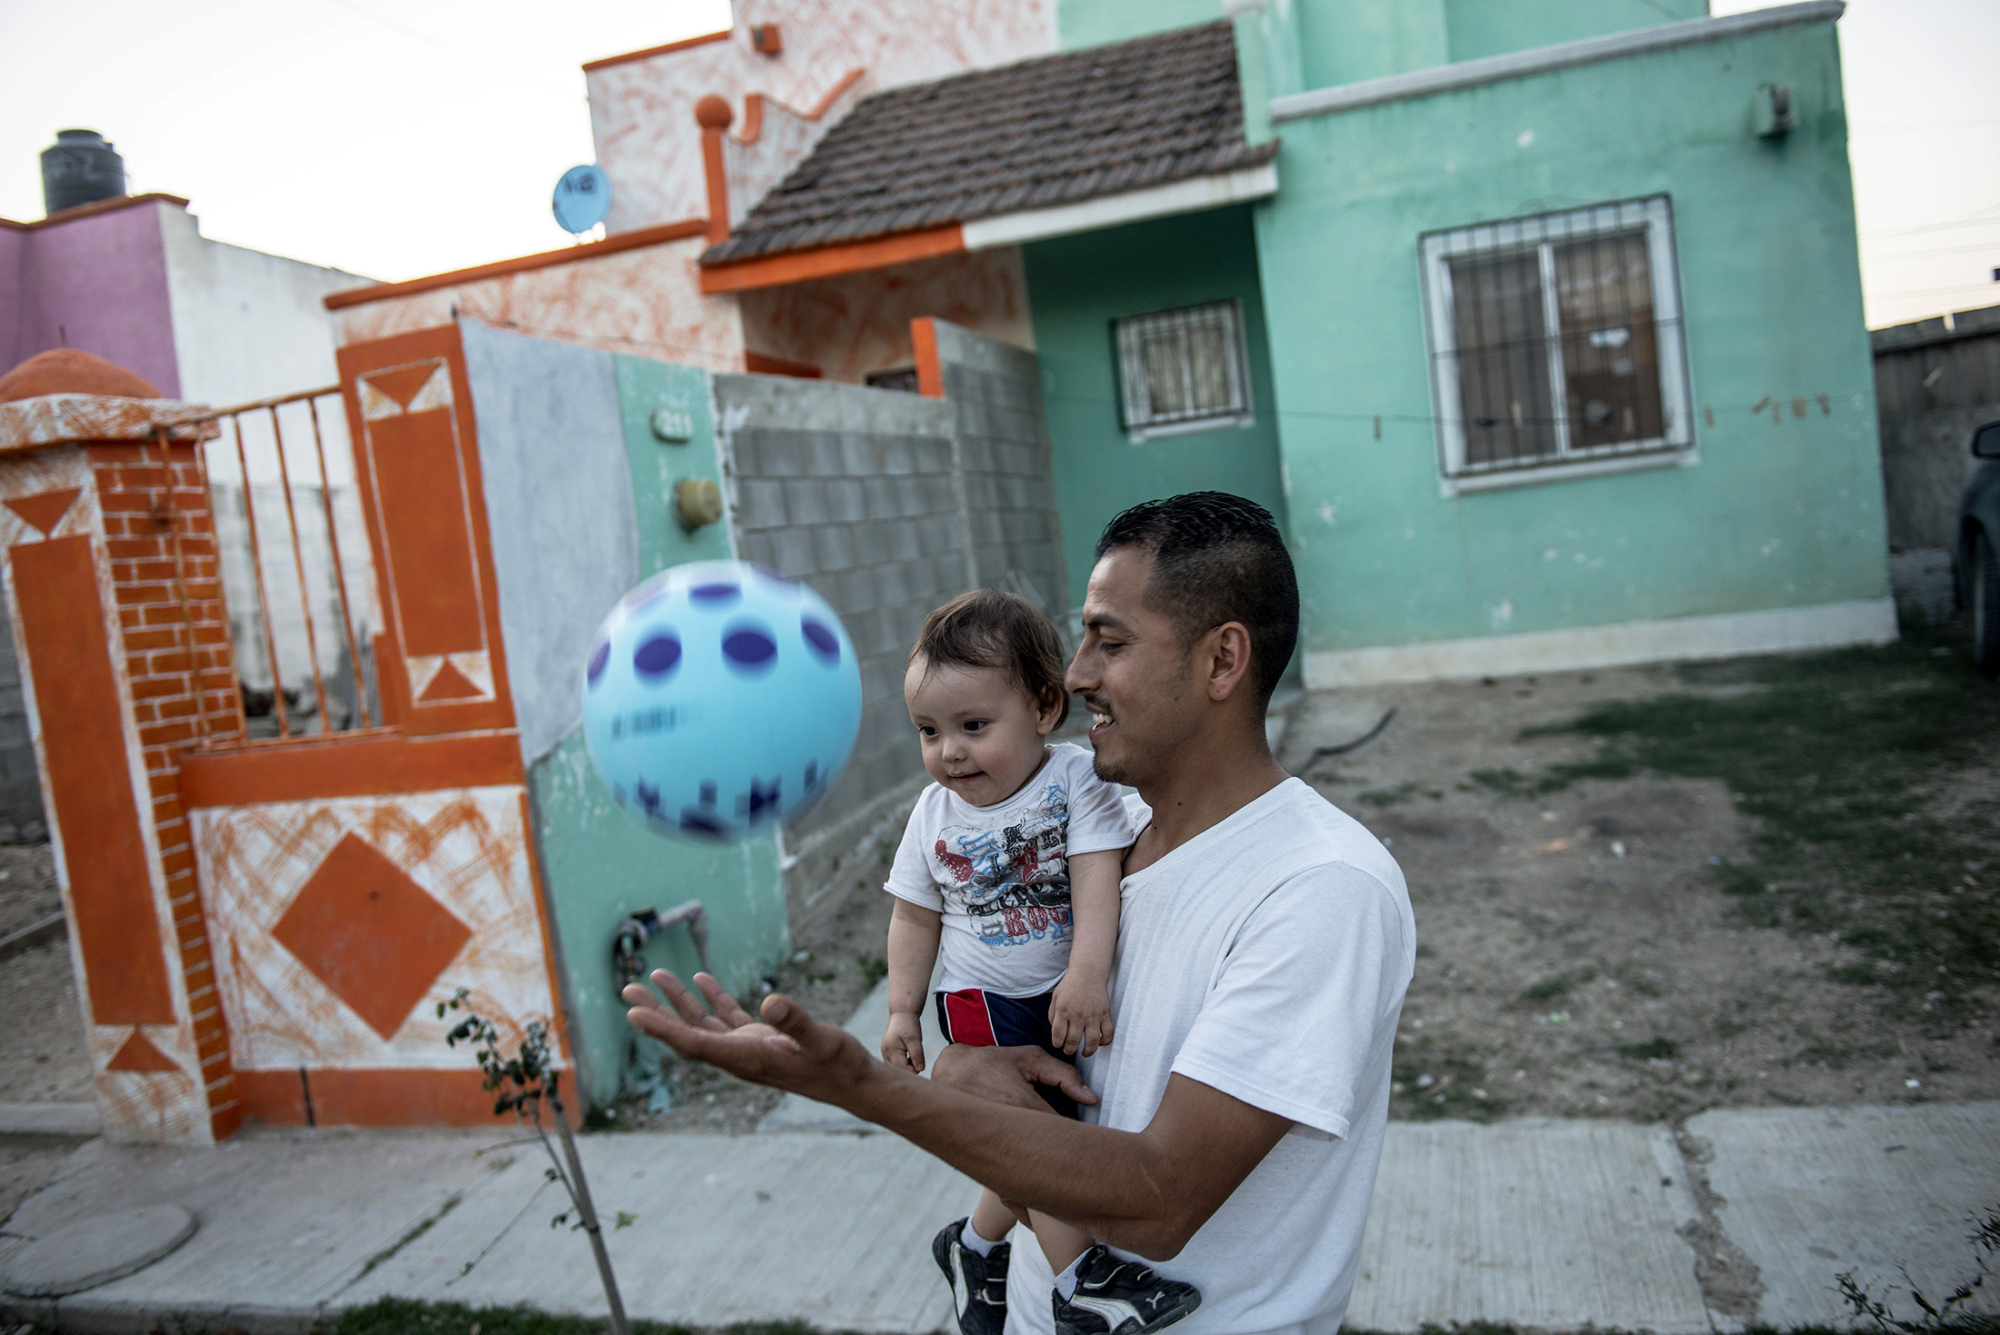 Manuel Aragon plays with his one-year-old son in Acuna, Mexico.